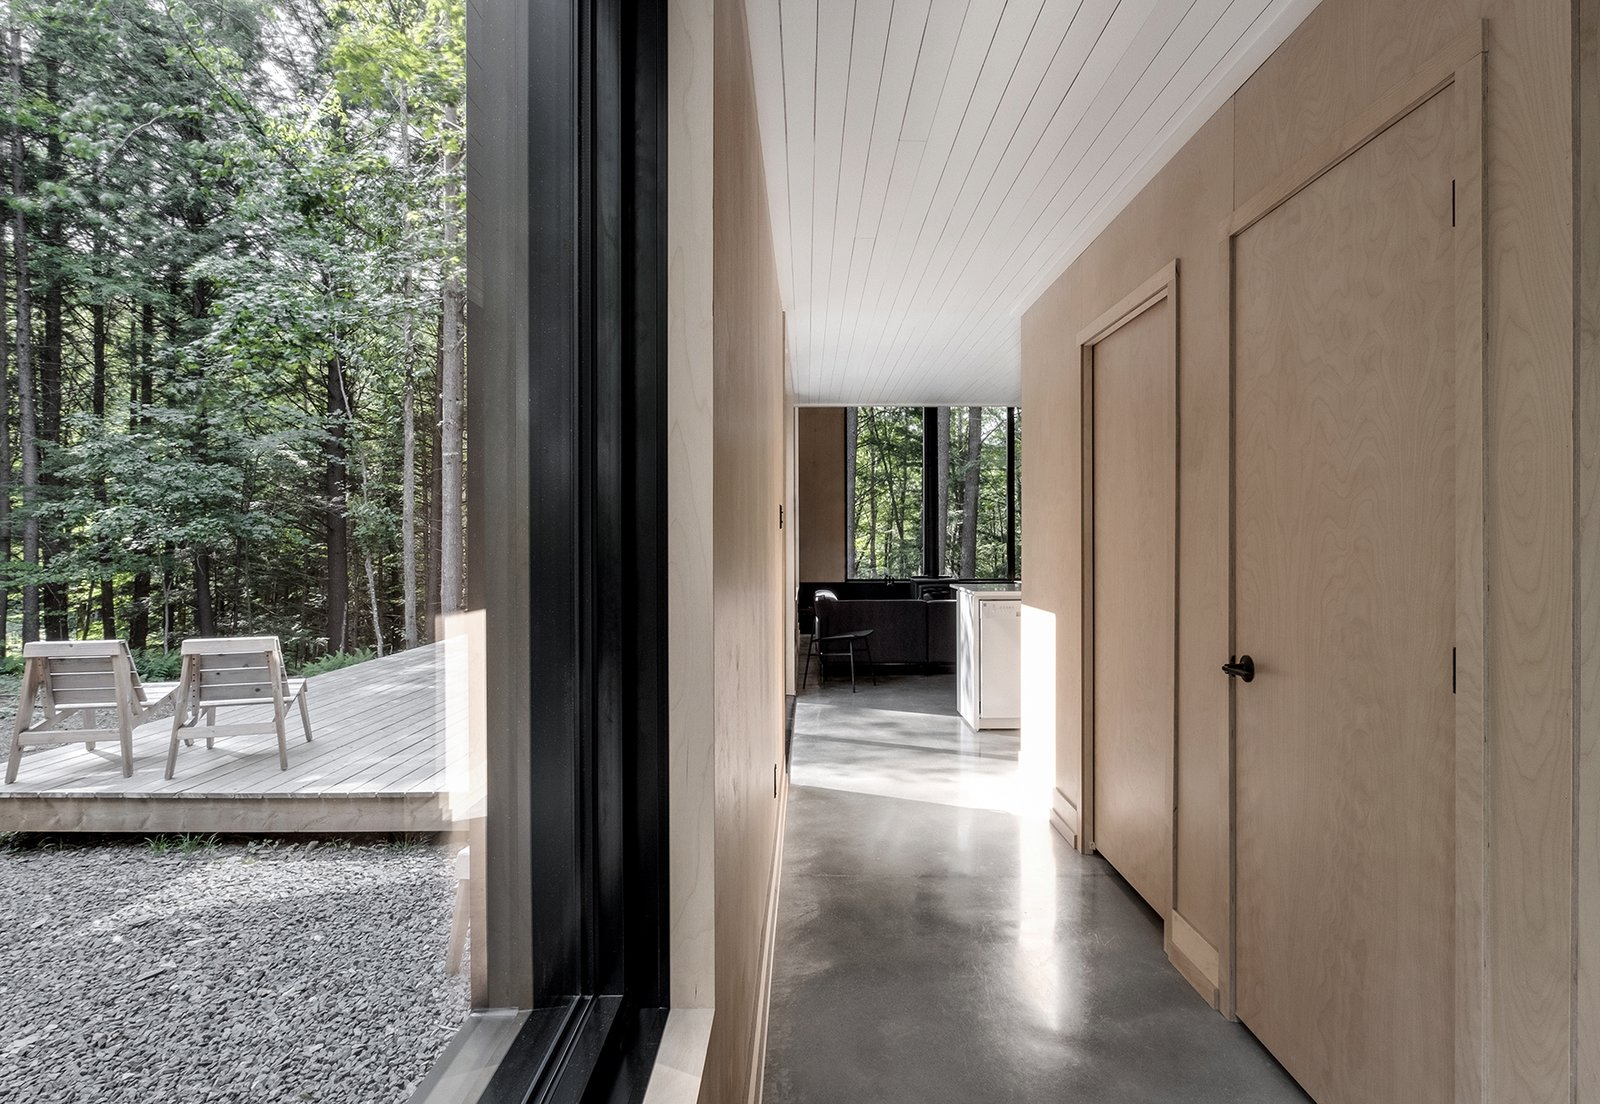 Hallway and Concrete Floor  Photo 9 of 17 in A Lofty Nature Retreat in Quebec Inspired by Nordic Architecture